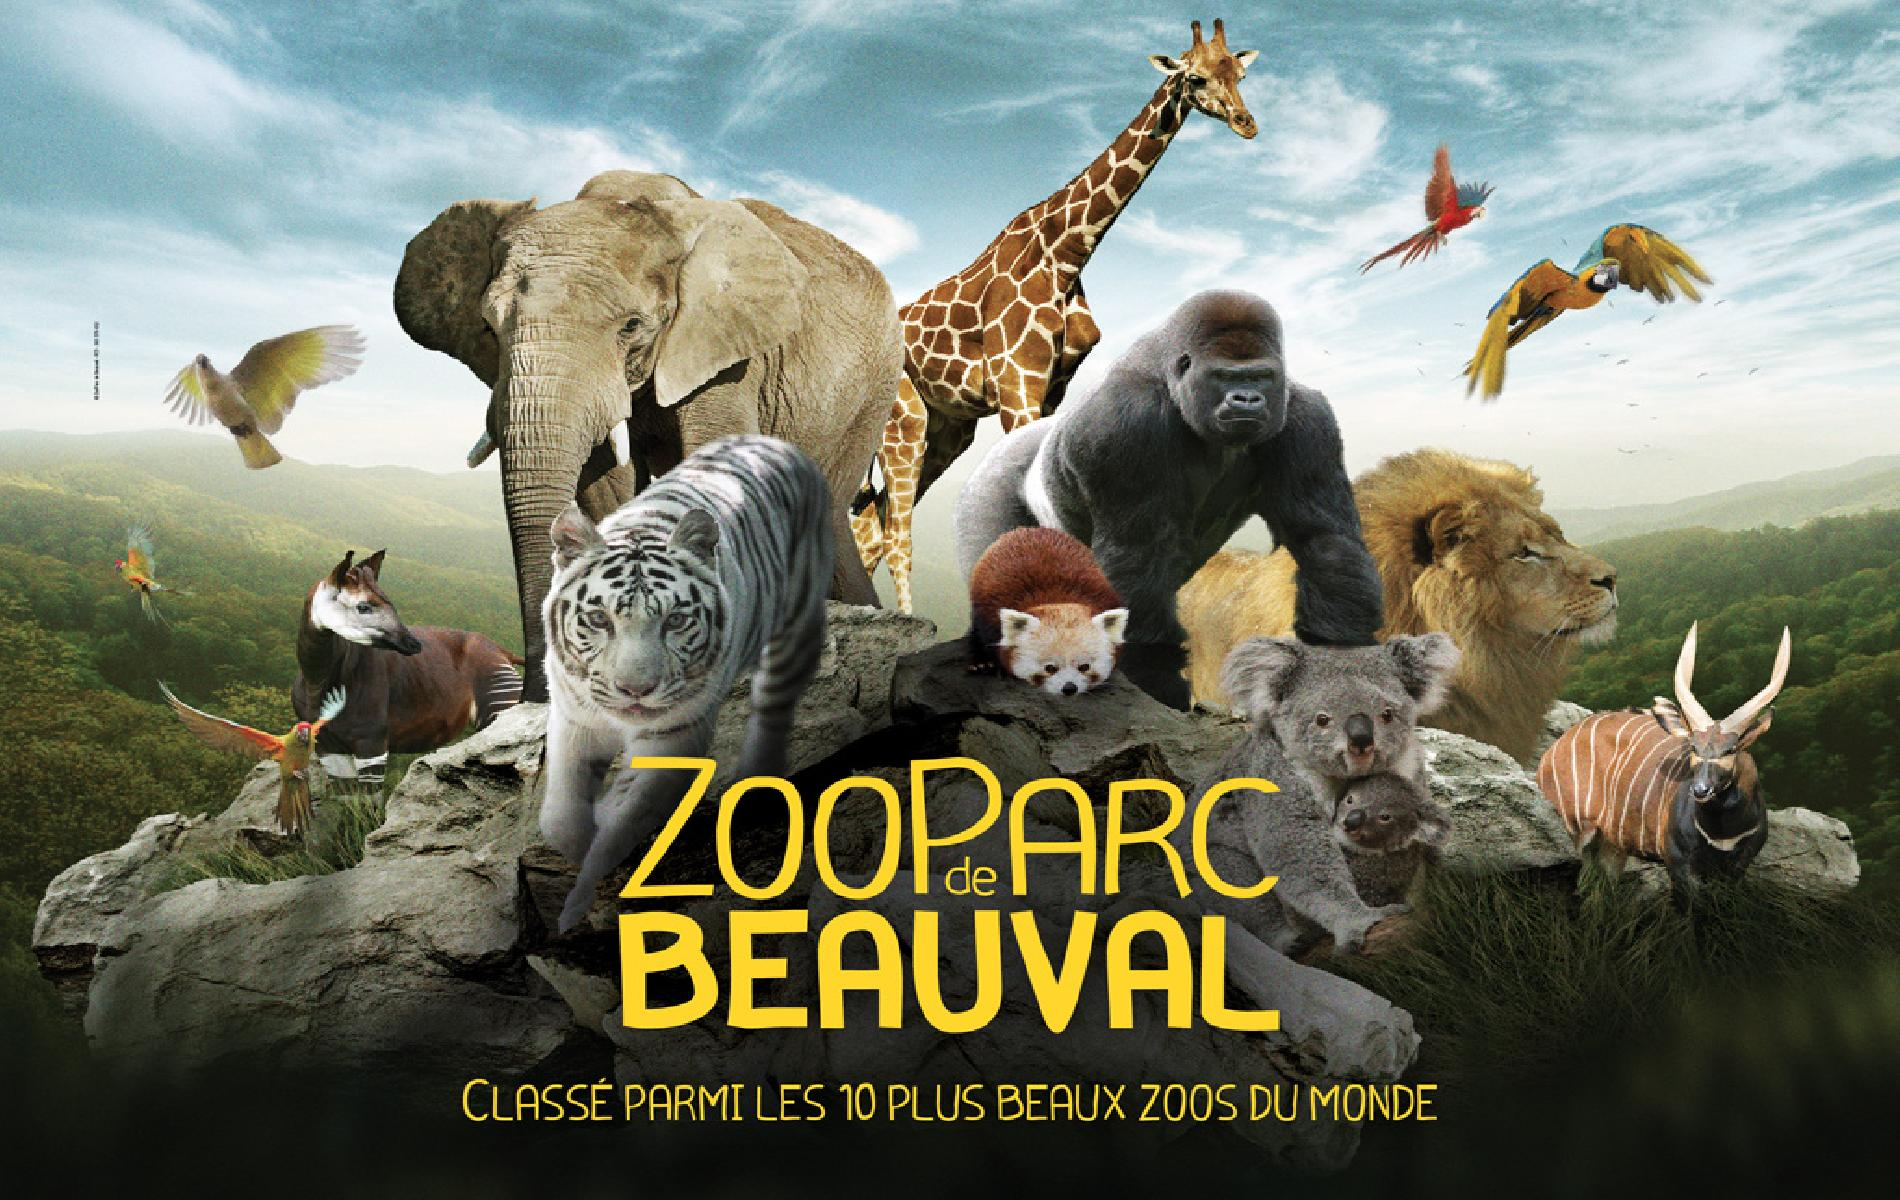 Beauval zoo